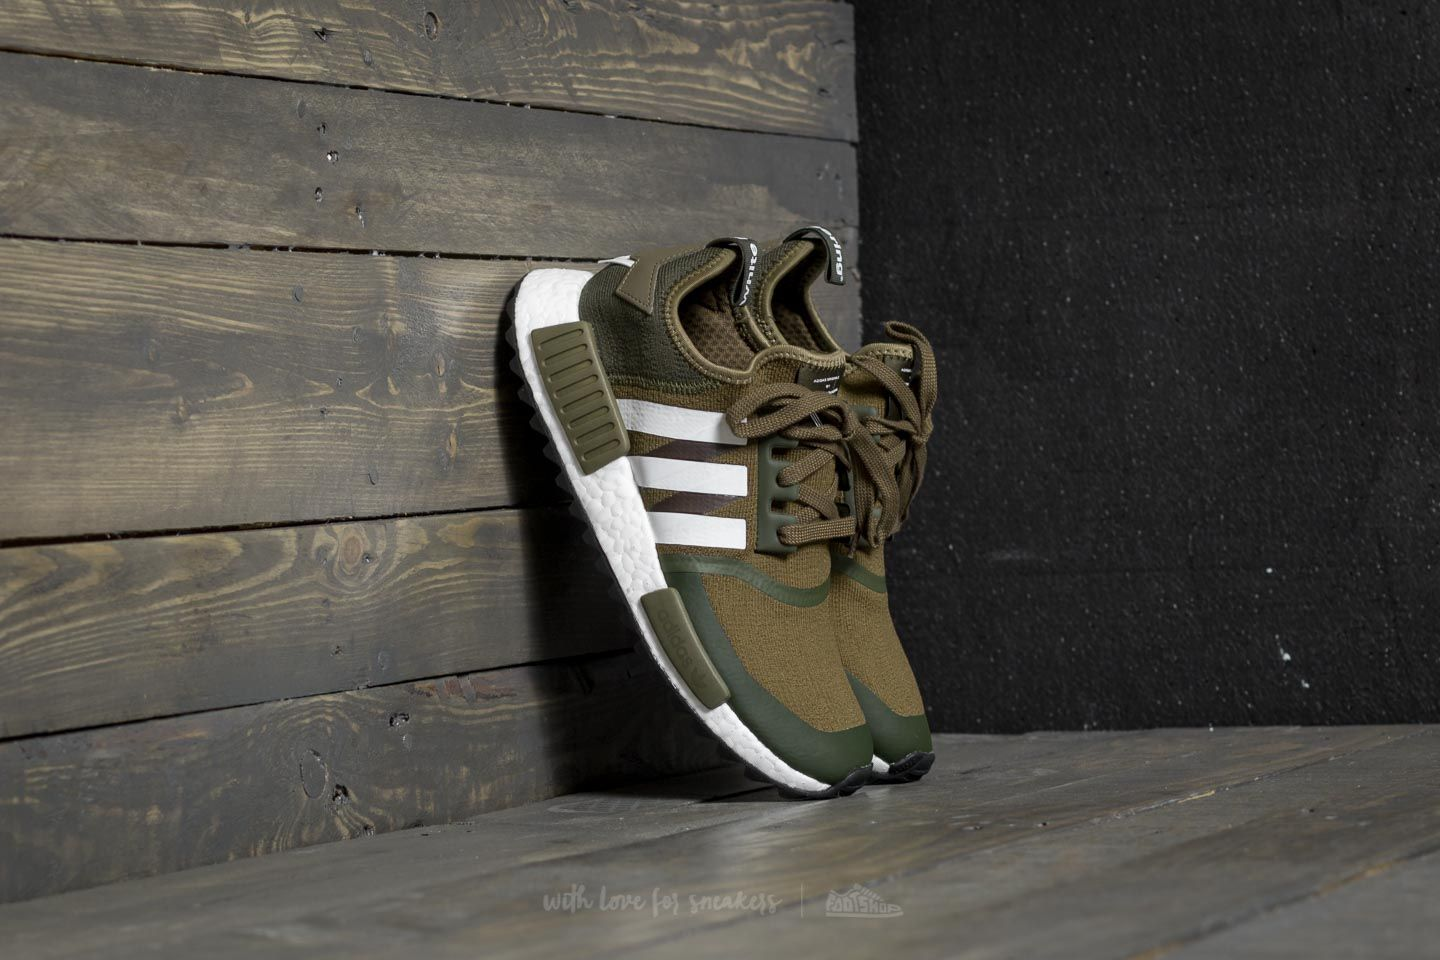 new style 4120d 7e3d8 adidas x White Mountaineering NMD Trail Primeknit